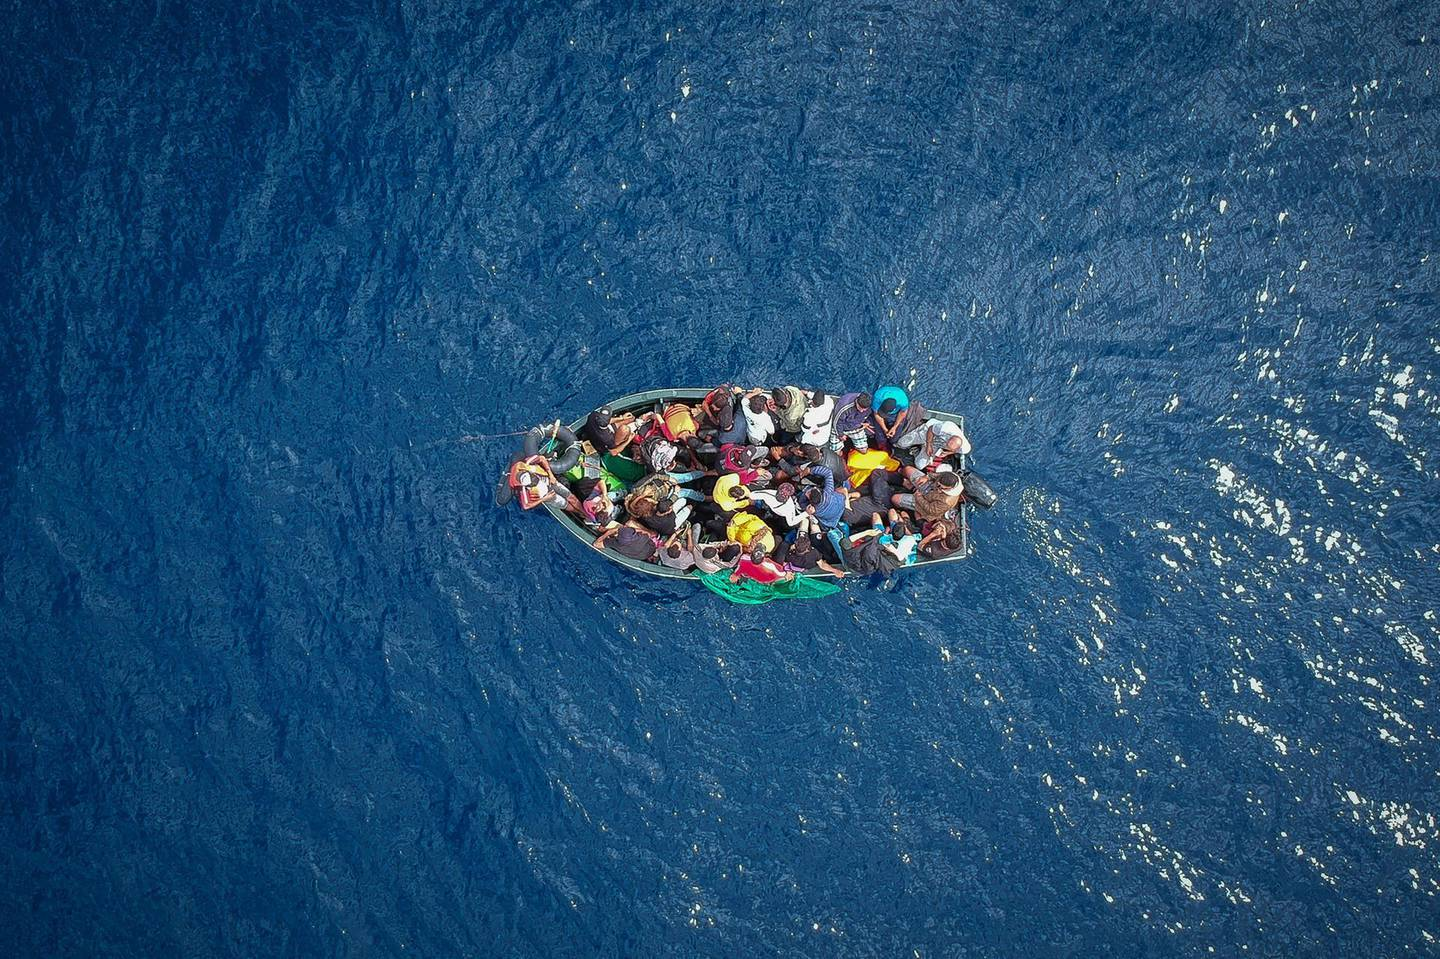 An aerial photo shows a boat carrying migrants stranded in the Strait of Gibraltar before being rescued by the Spanish Guardia Civil and the Salvamento Maritimo sea search and rescue agency that saw 157 migrants rescued on September 8, 2018. - While the overall number of migrants reaching Europe by sea is down from a peak in 2015, Spain has seen a steady increase in arrivals this year and has overtaken Italy as the preferred destination for people desperate to reach the continent. Over 33,000 migrants have arrived in Spain by sea and land so far this year, and 329 have died in the attempt, according to the International Organization for Migration. (Photo by Marcos Moreno / AFP)